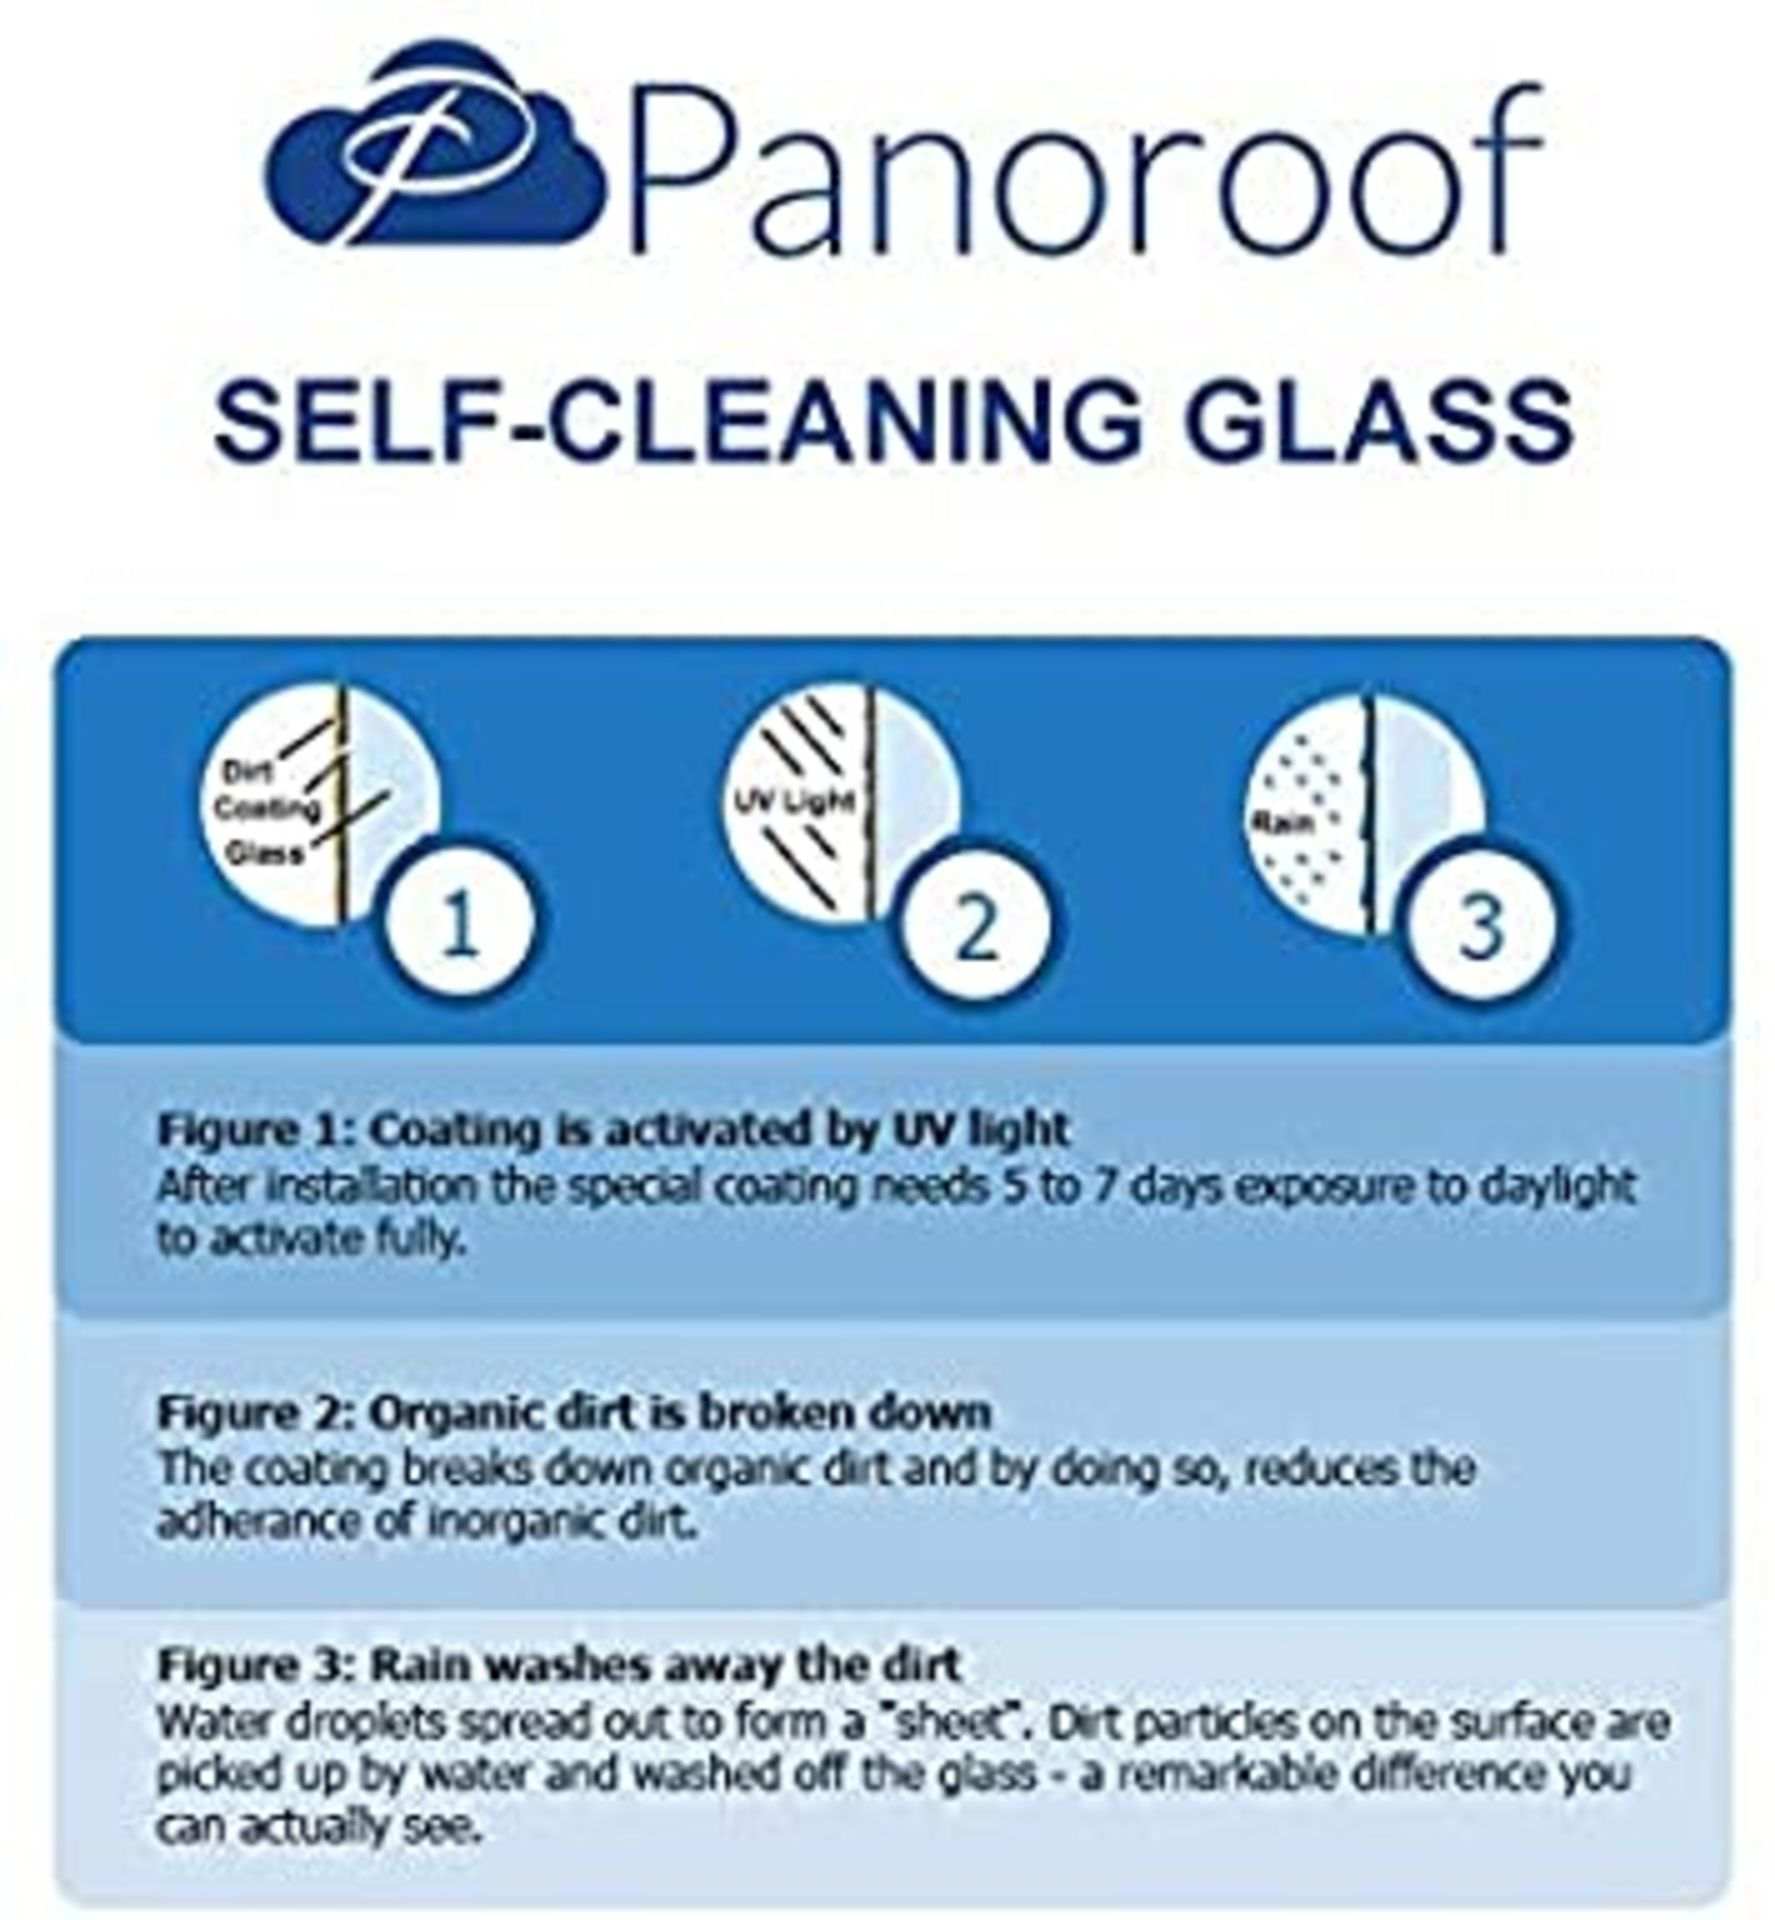 """""""Panoroof Triple Glazed Self Cleaning , 400x1500mm (inside Size Visable glass area) Seamless Glass - Image 6 of 6"""